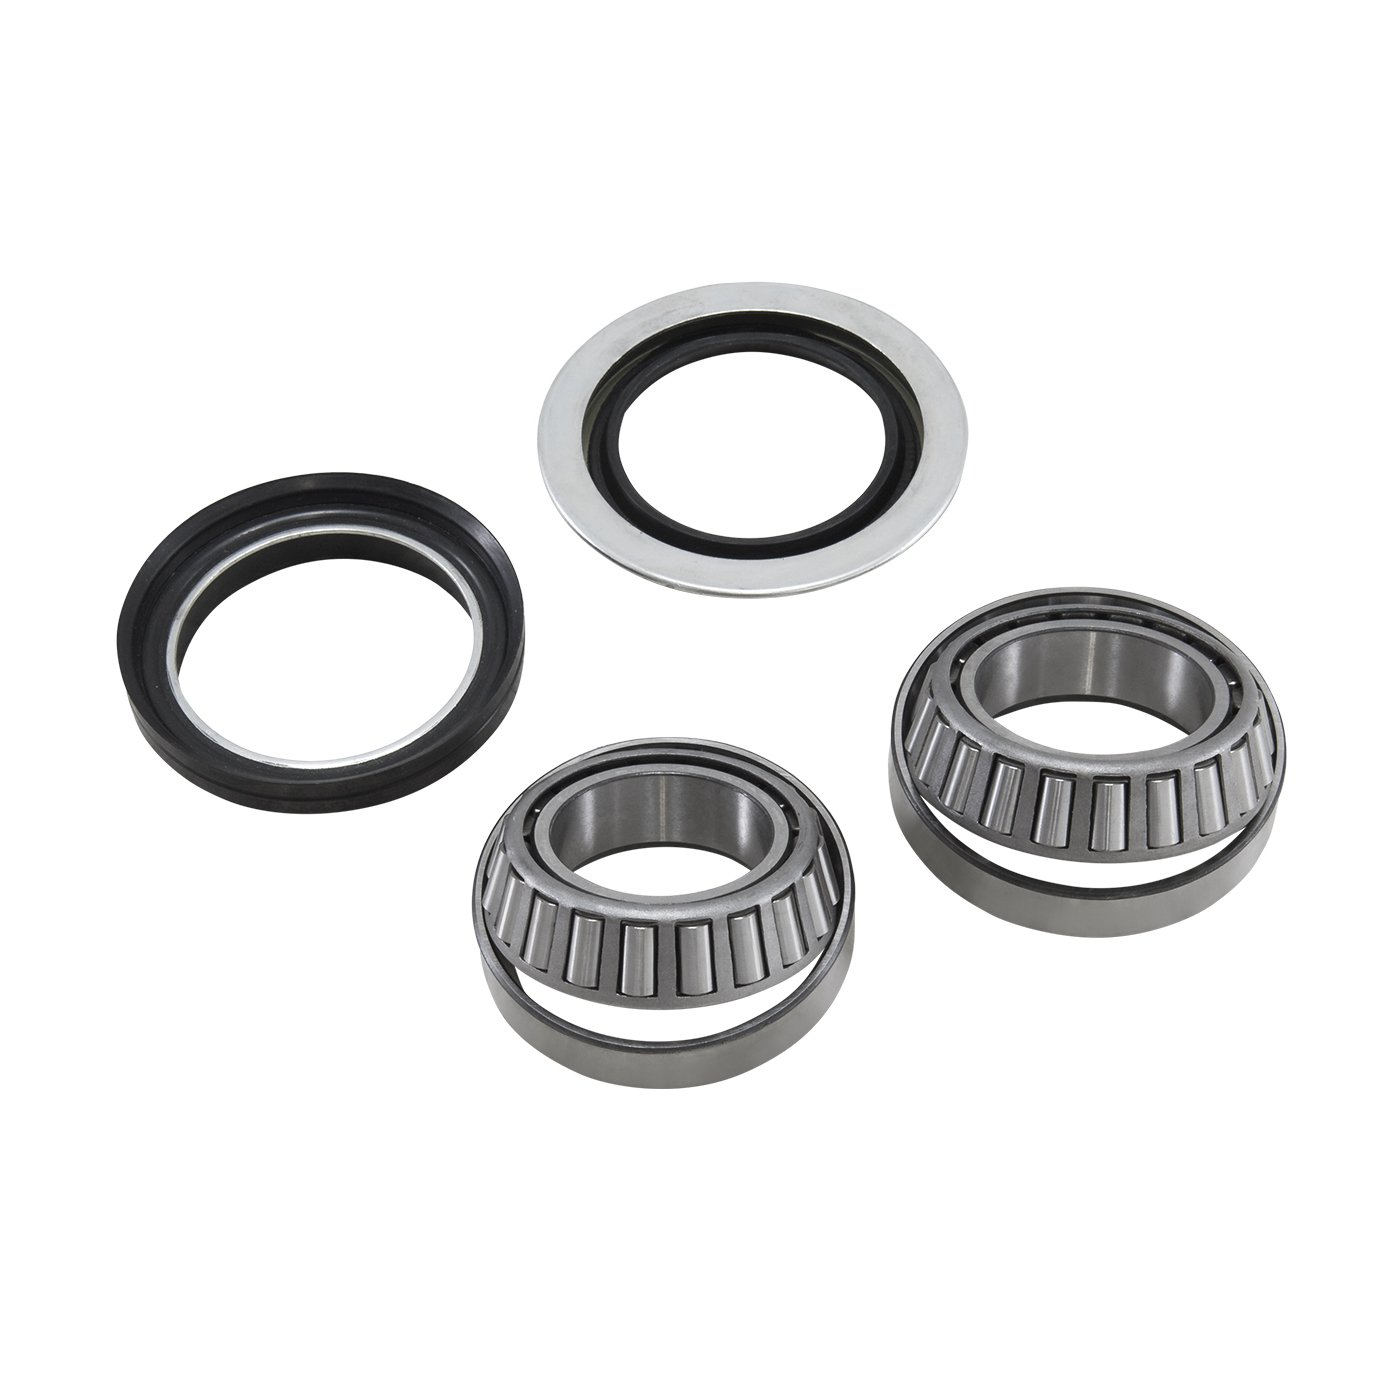 Yukon (AK F-F01) Front Axle Bearing and Seal Kit for Dana 44/Ford 1/2 Ton Truck